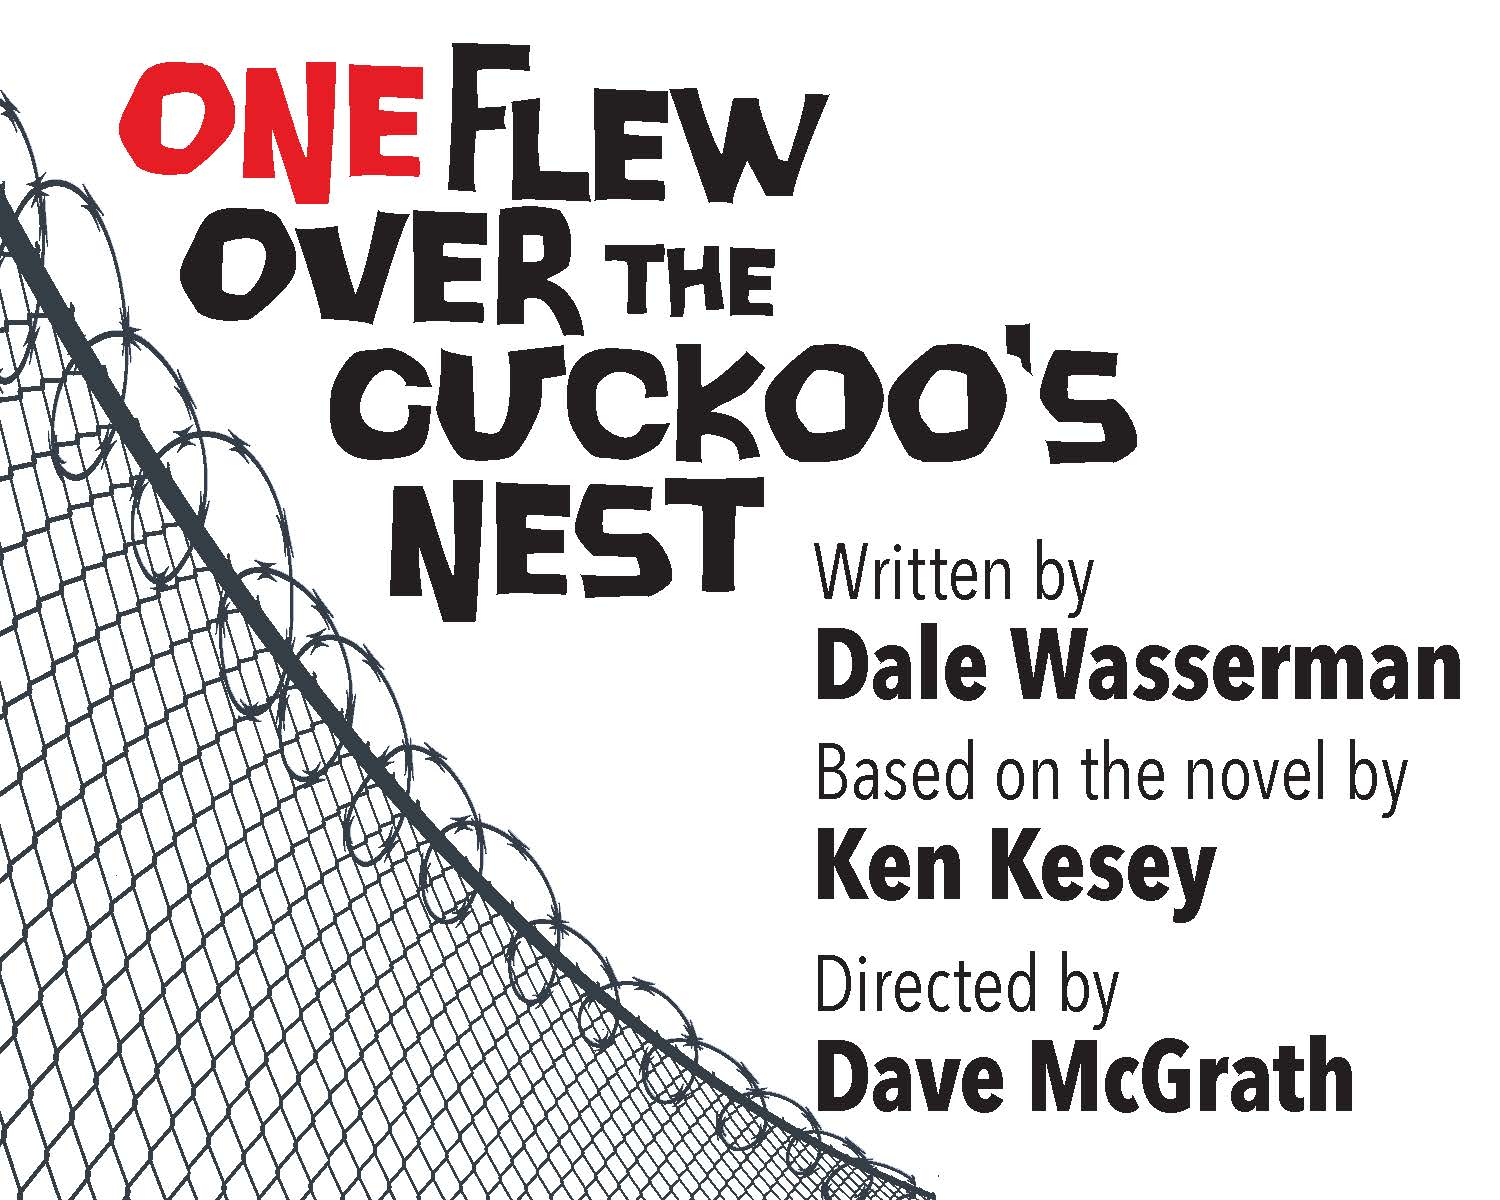 an analysis of suffering in one flew over the cuckoos nest by ken kesey A summary of themes in ken kesey's one flew over the cuckoo's nest the protagonist, both tend to describe the suffering when his wildness is provoked one.